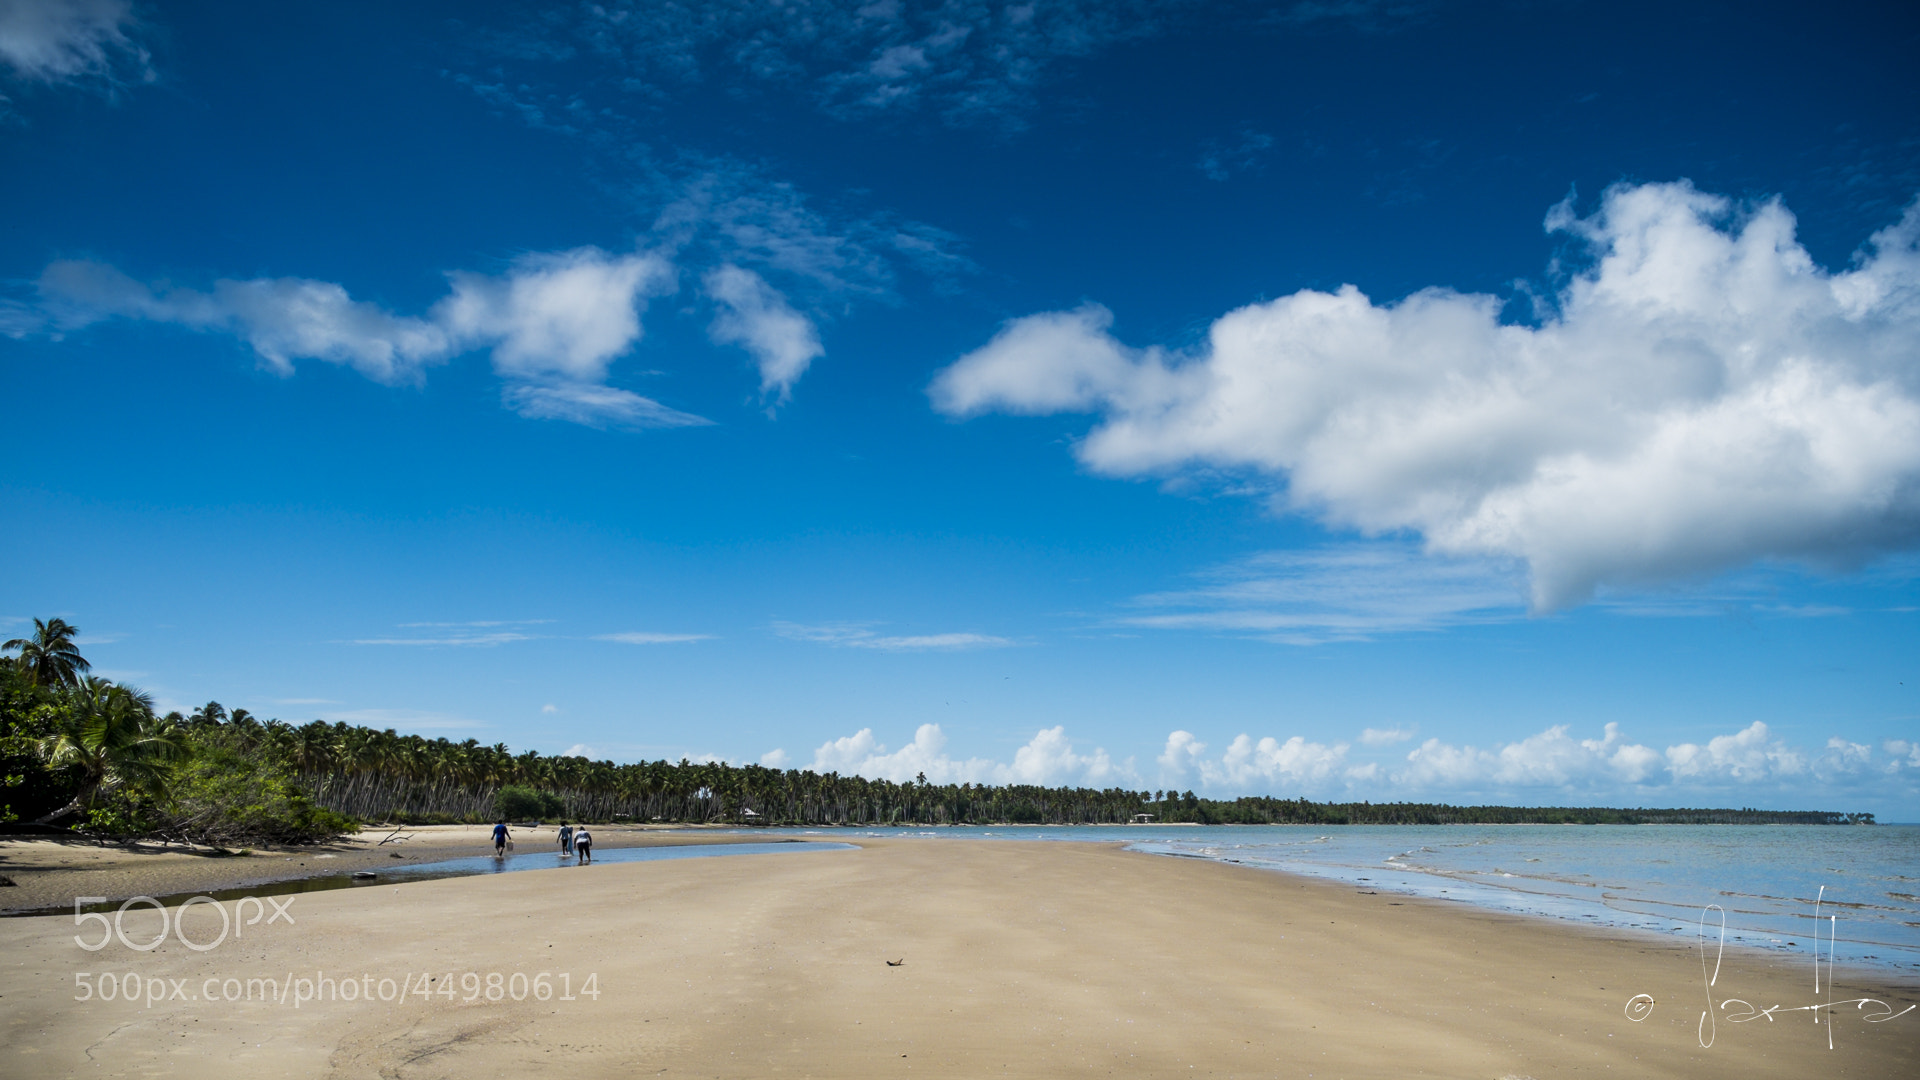 Photograph Untitled by Sarita Rampersad on 500px